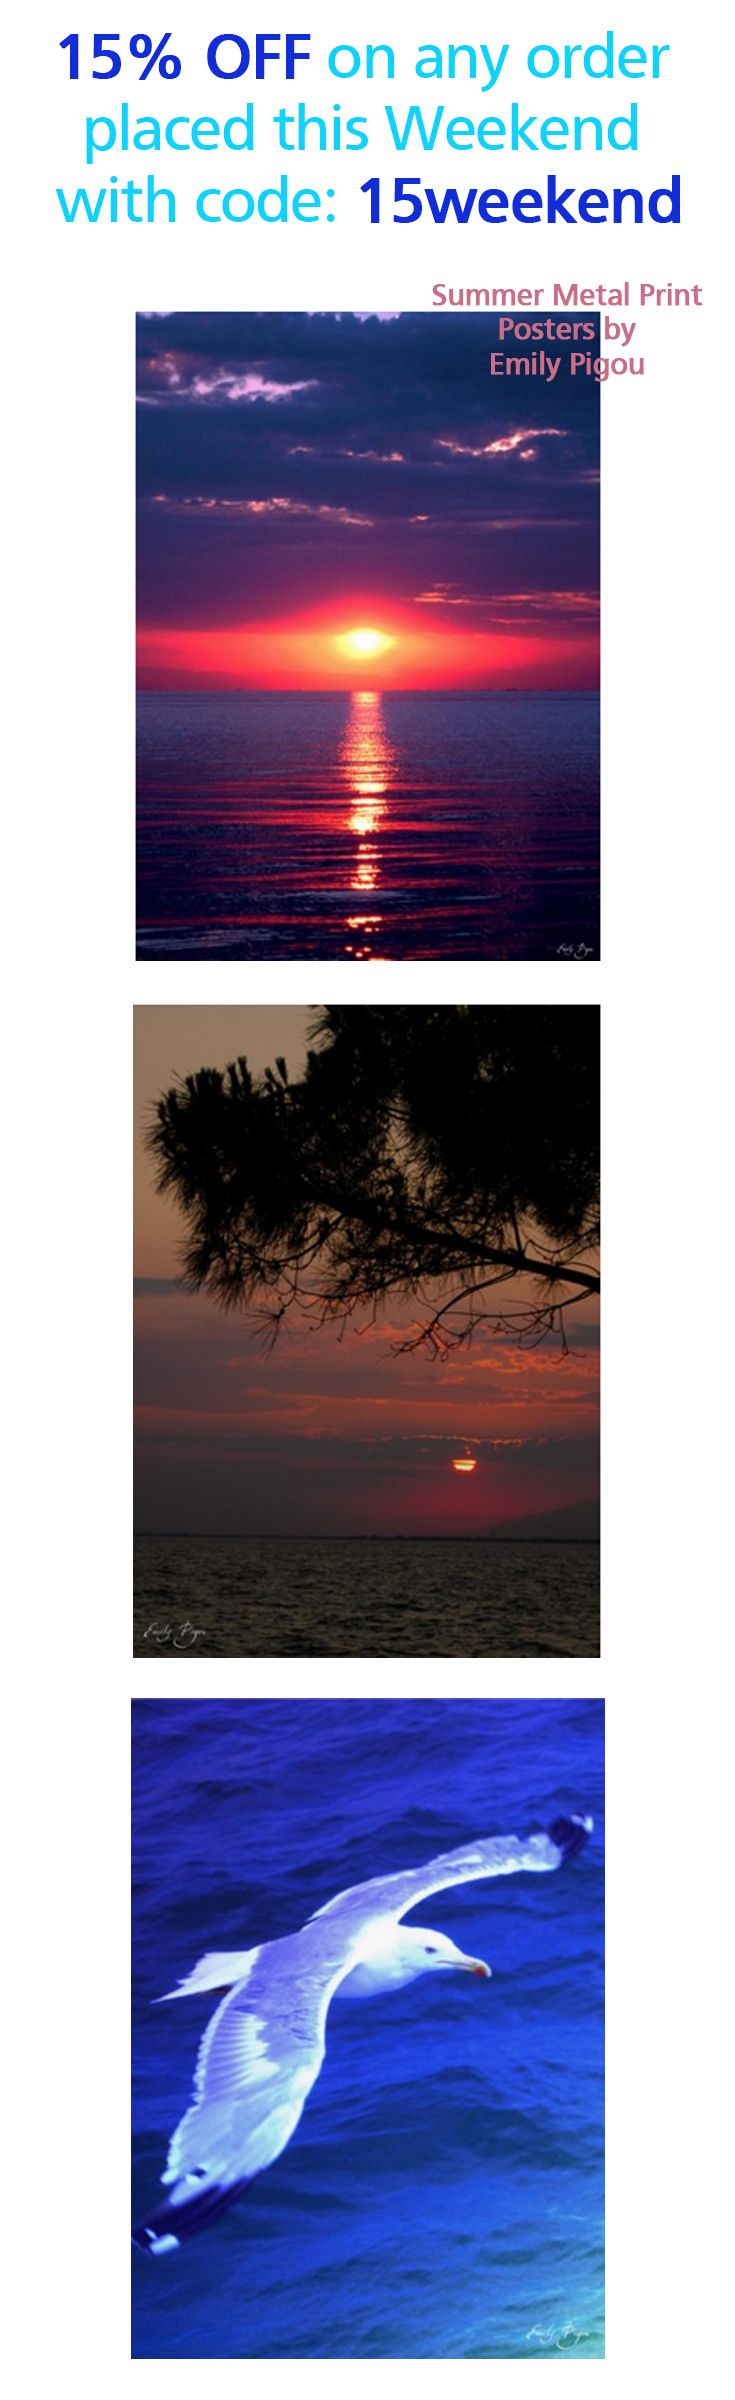 15% OFF on any order placed this Weekend with code: 15weekend. . Summer  Landscape Photography Posters  Printed on Metal  by Emily Pigou. #seaposter #summer #discount #save #sales #weekendsales #displate #summerphotography  #summerhouse #homedecor #summerposters #seagull #calmness #emilypigou #sunset #travel #photography #Greece #traveltogreece #seascape #landscape